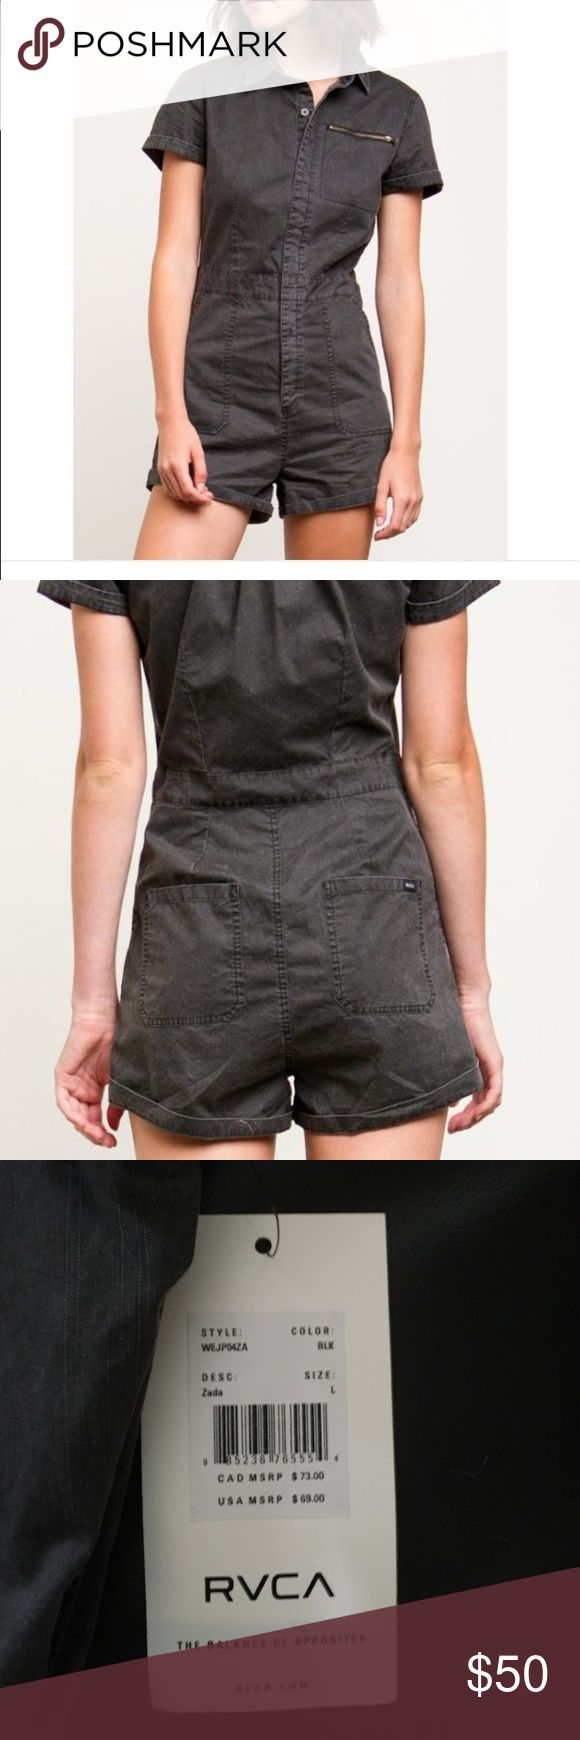 RVCA romper The RVCA Zada is a coated cotton, utility style jumper with a hidden button placket, a zip patch chest pocket, slash pockets at the front, back patch pockets, and rolled sleeve cuffs. The jumper has a RVCA solo label at the wearer's back right patch pocket. RVCA Other